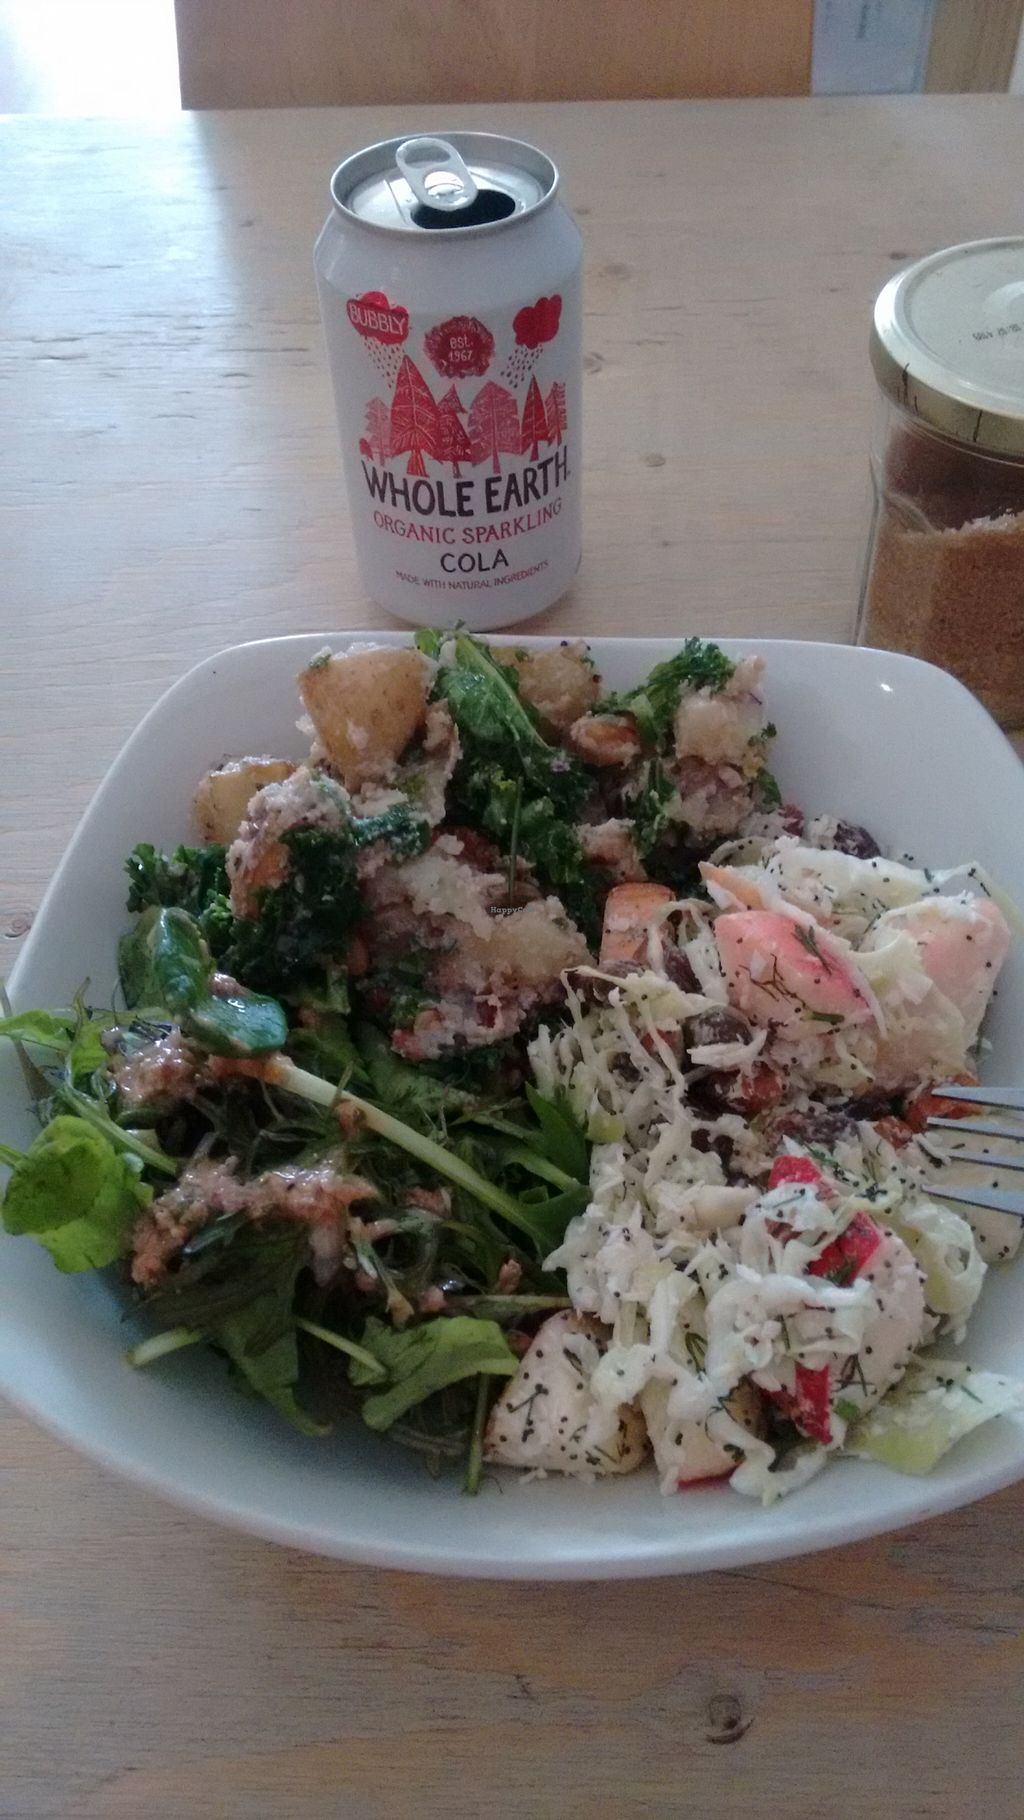 """Photo of The Project Cafe  by <a href=""""/members/profile/craigmc"""">craigmc</a> <br/>Bowl of three salads <br/> September 9, 2015  - <a href='/contact/abuse/image/47424/117012'>Report</a>"""